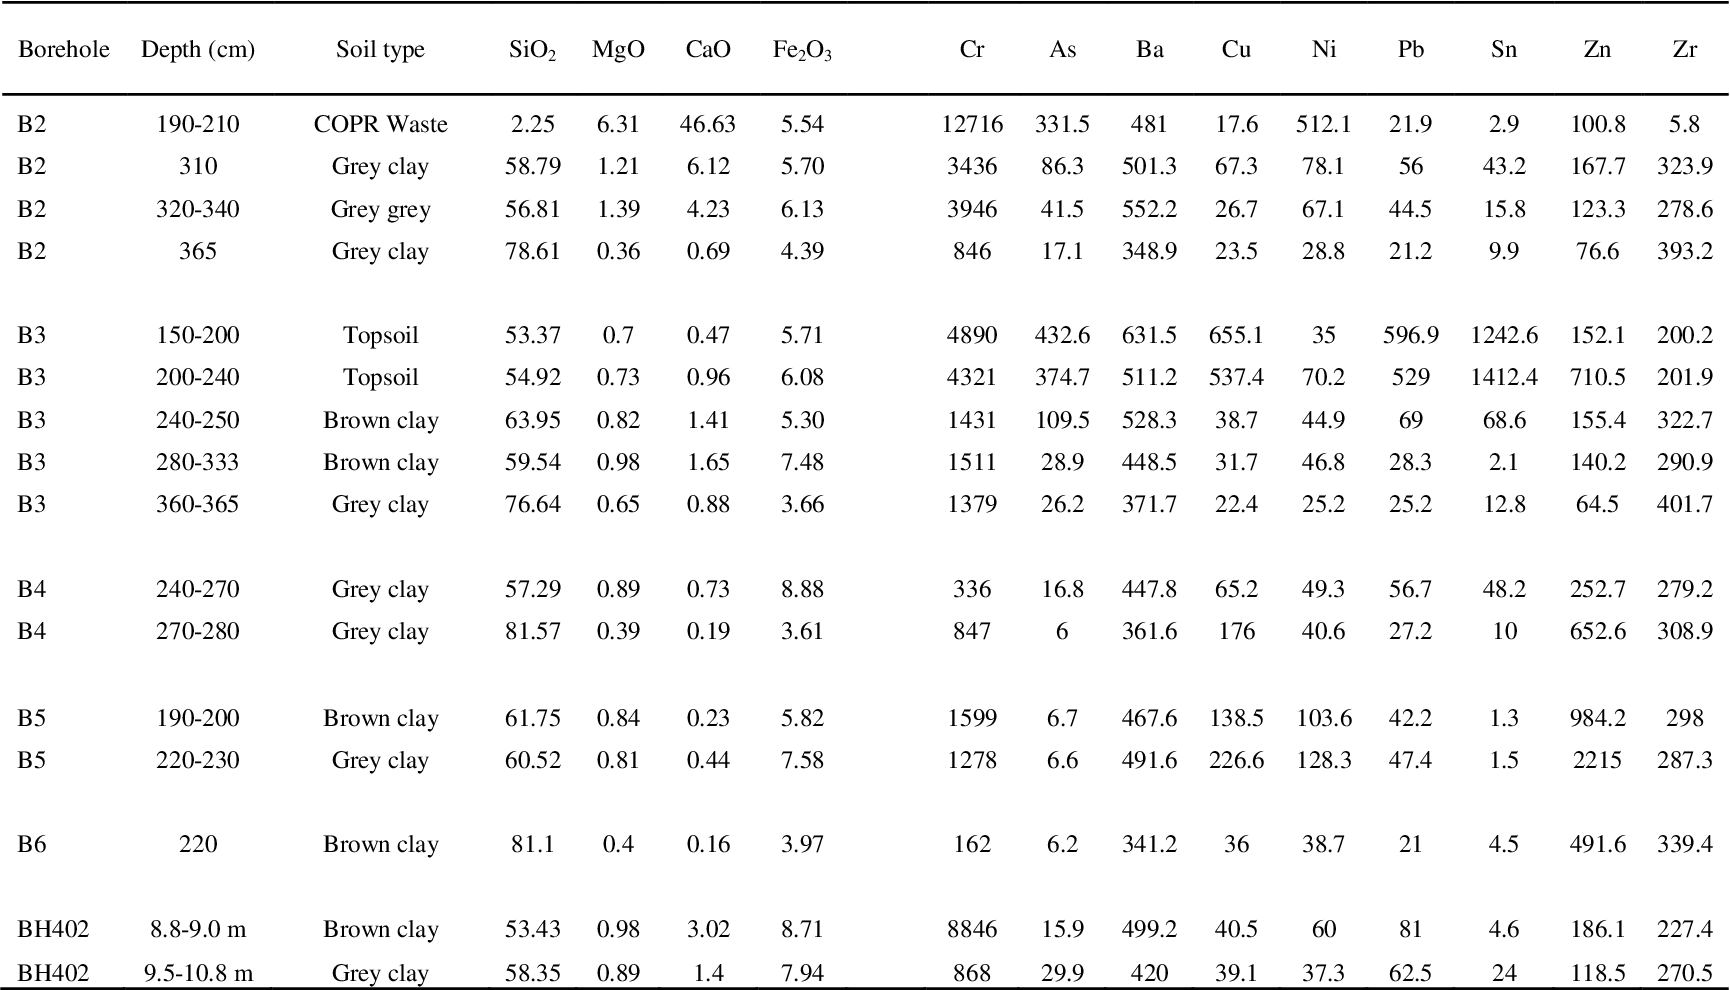 Table 4.2 Selected XRF major and trace elemental composition of soil samples reported as component oxide weight percent and parts per million (ppm) respectively. Major element data corrected for loss on ignition.